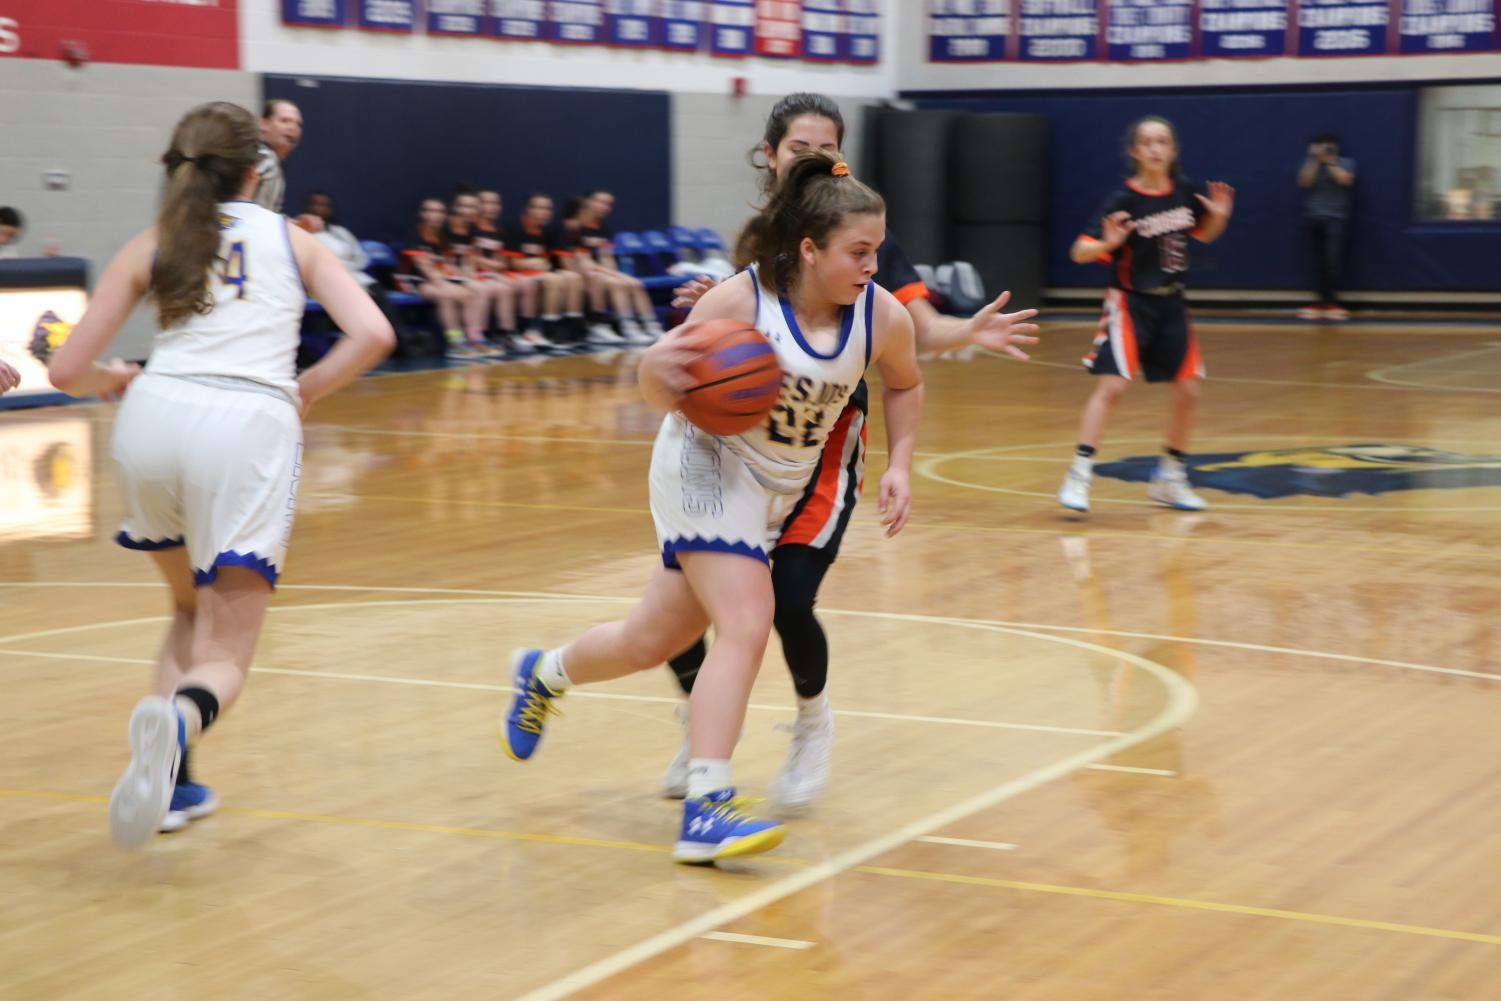 Sophomore Avital Friedman dribbles the ball as she attempts to run past the Cougars to the net.